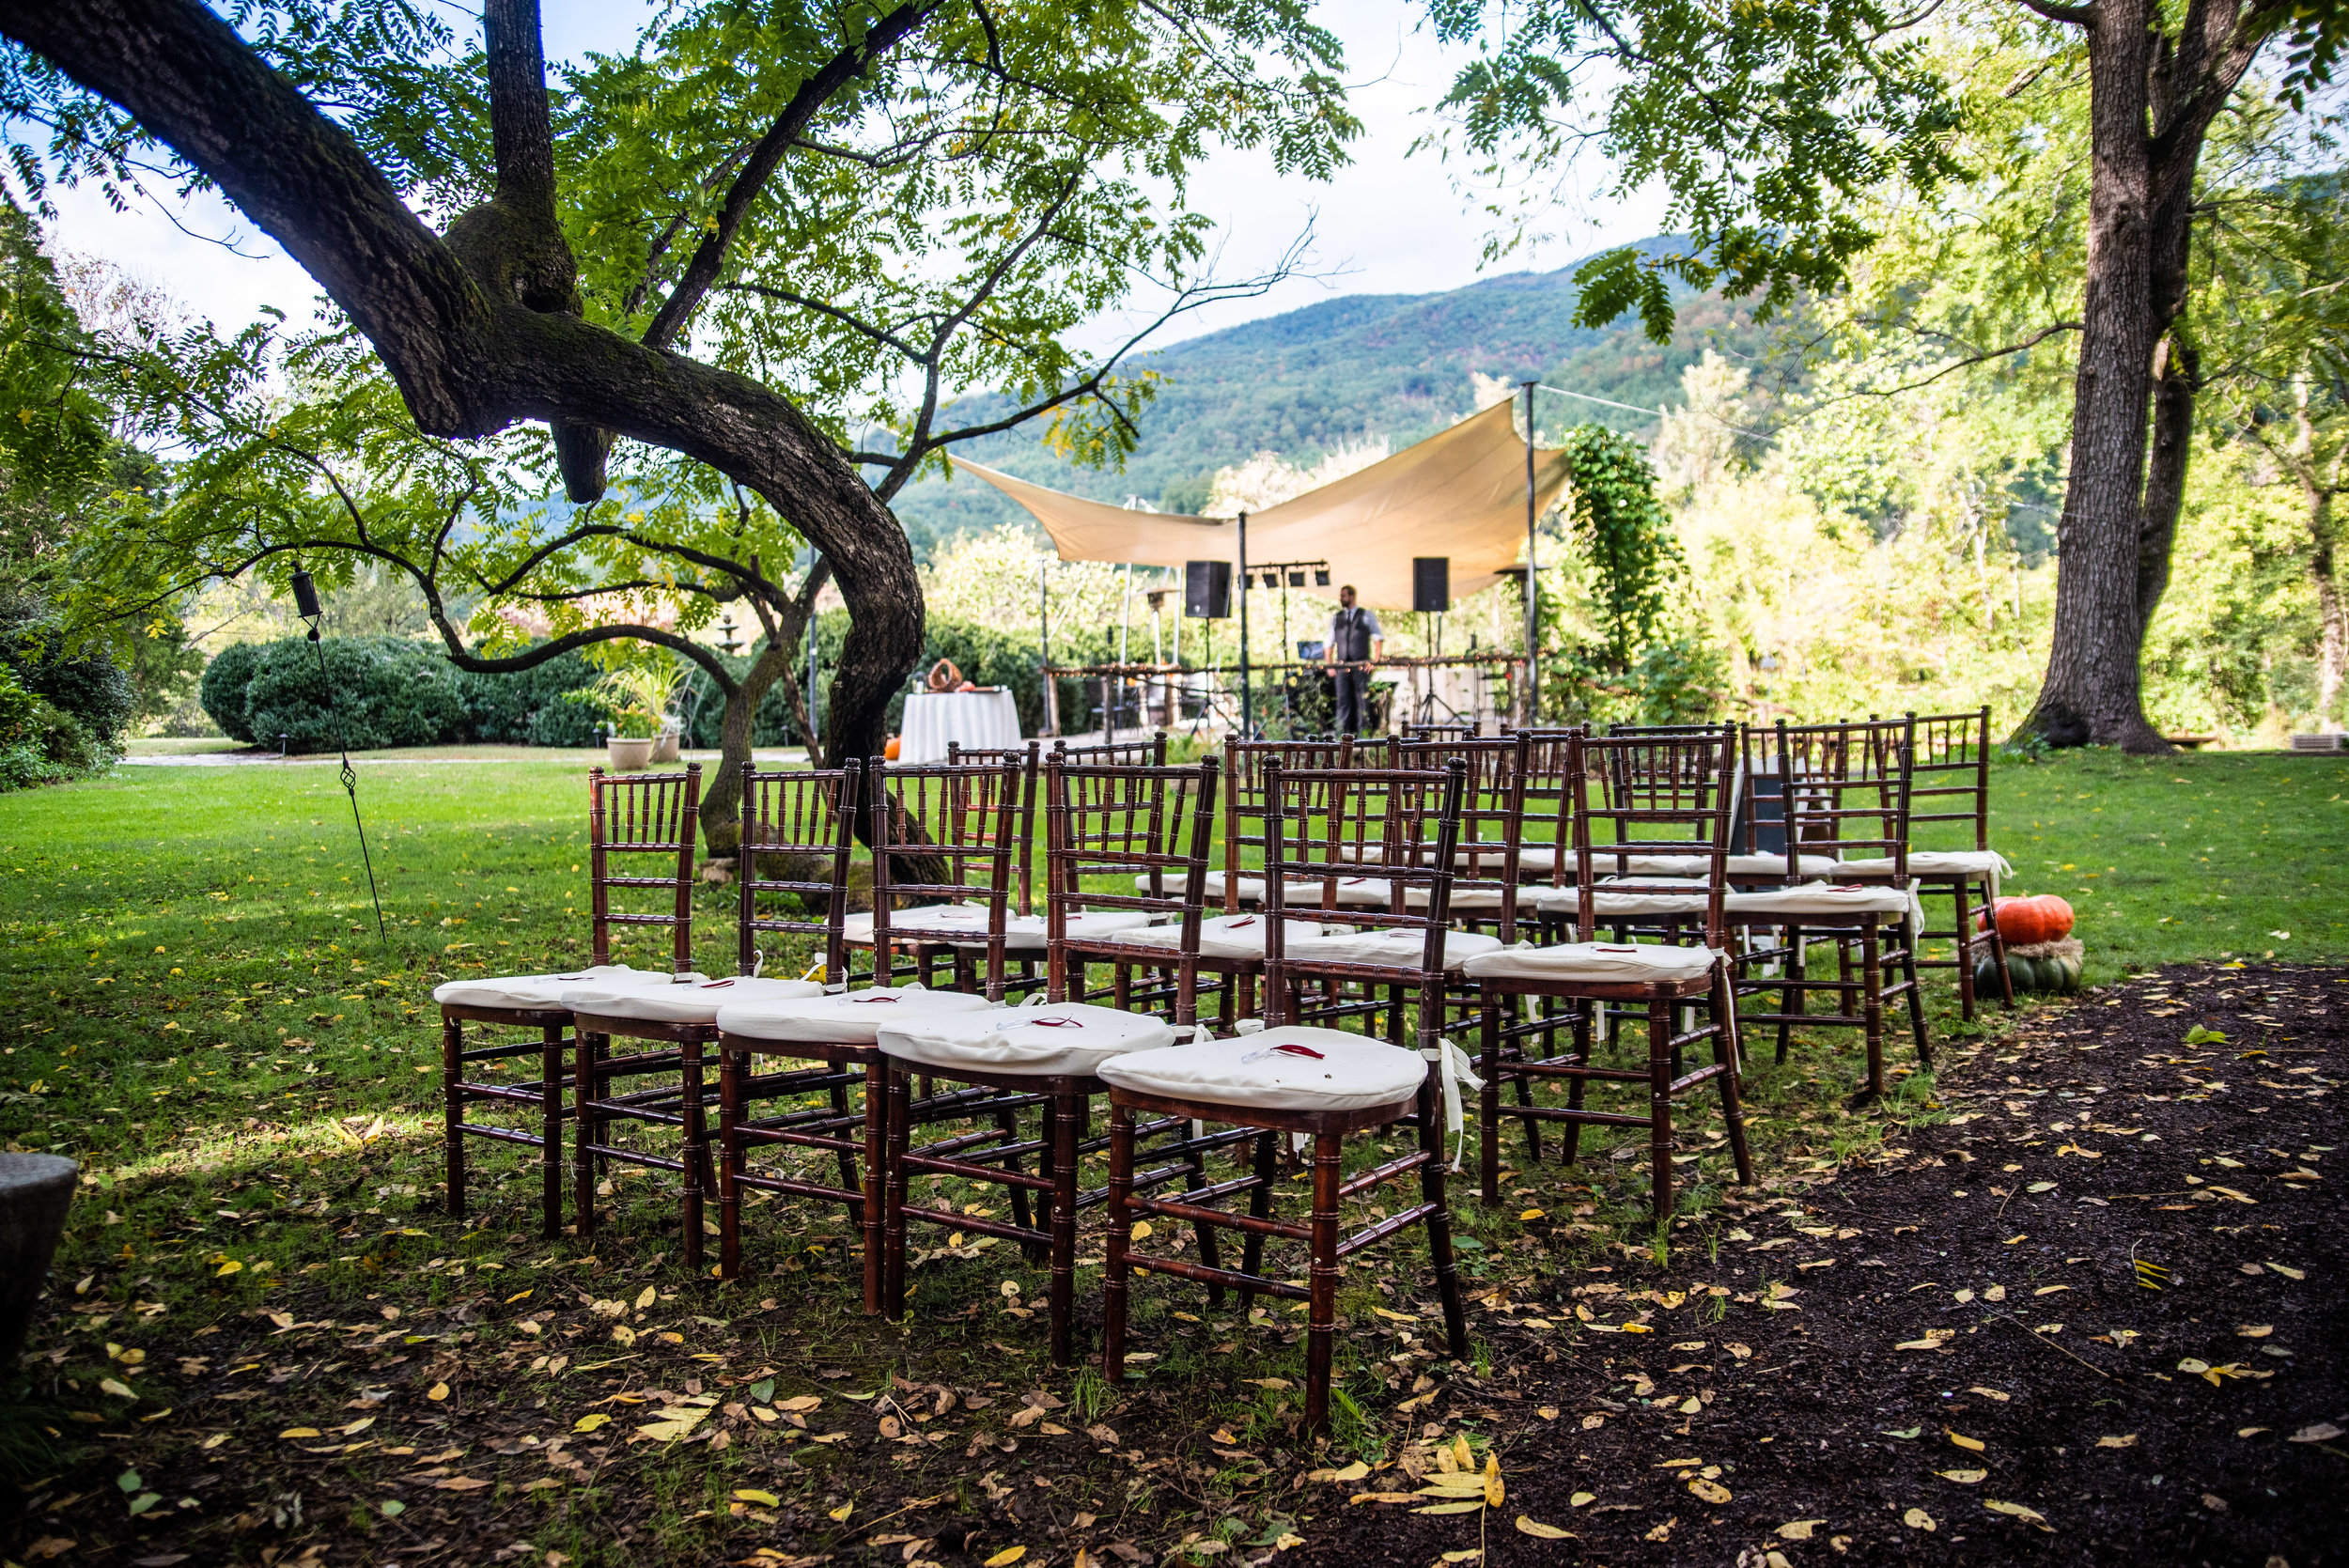 Tip #3 Chairs - Are they included in the venue fee? What do they look like? Are there chairs not included, but nicer ones than the included ones on site available for rent? What if the chairs available don't fit the aesthetic of the event, are outside rentals allowed? Are there chairs available with a cushioning for the guests?